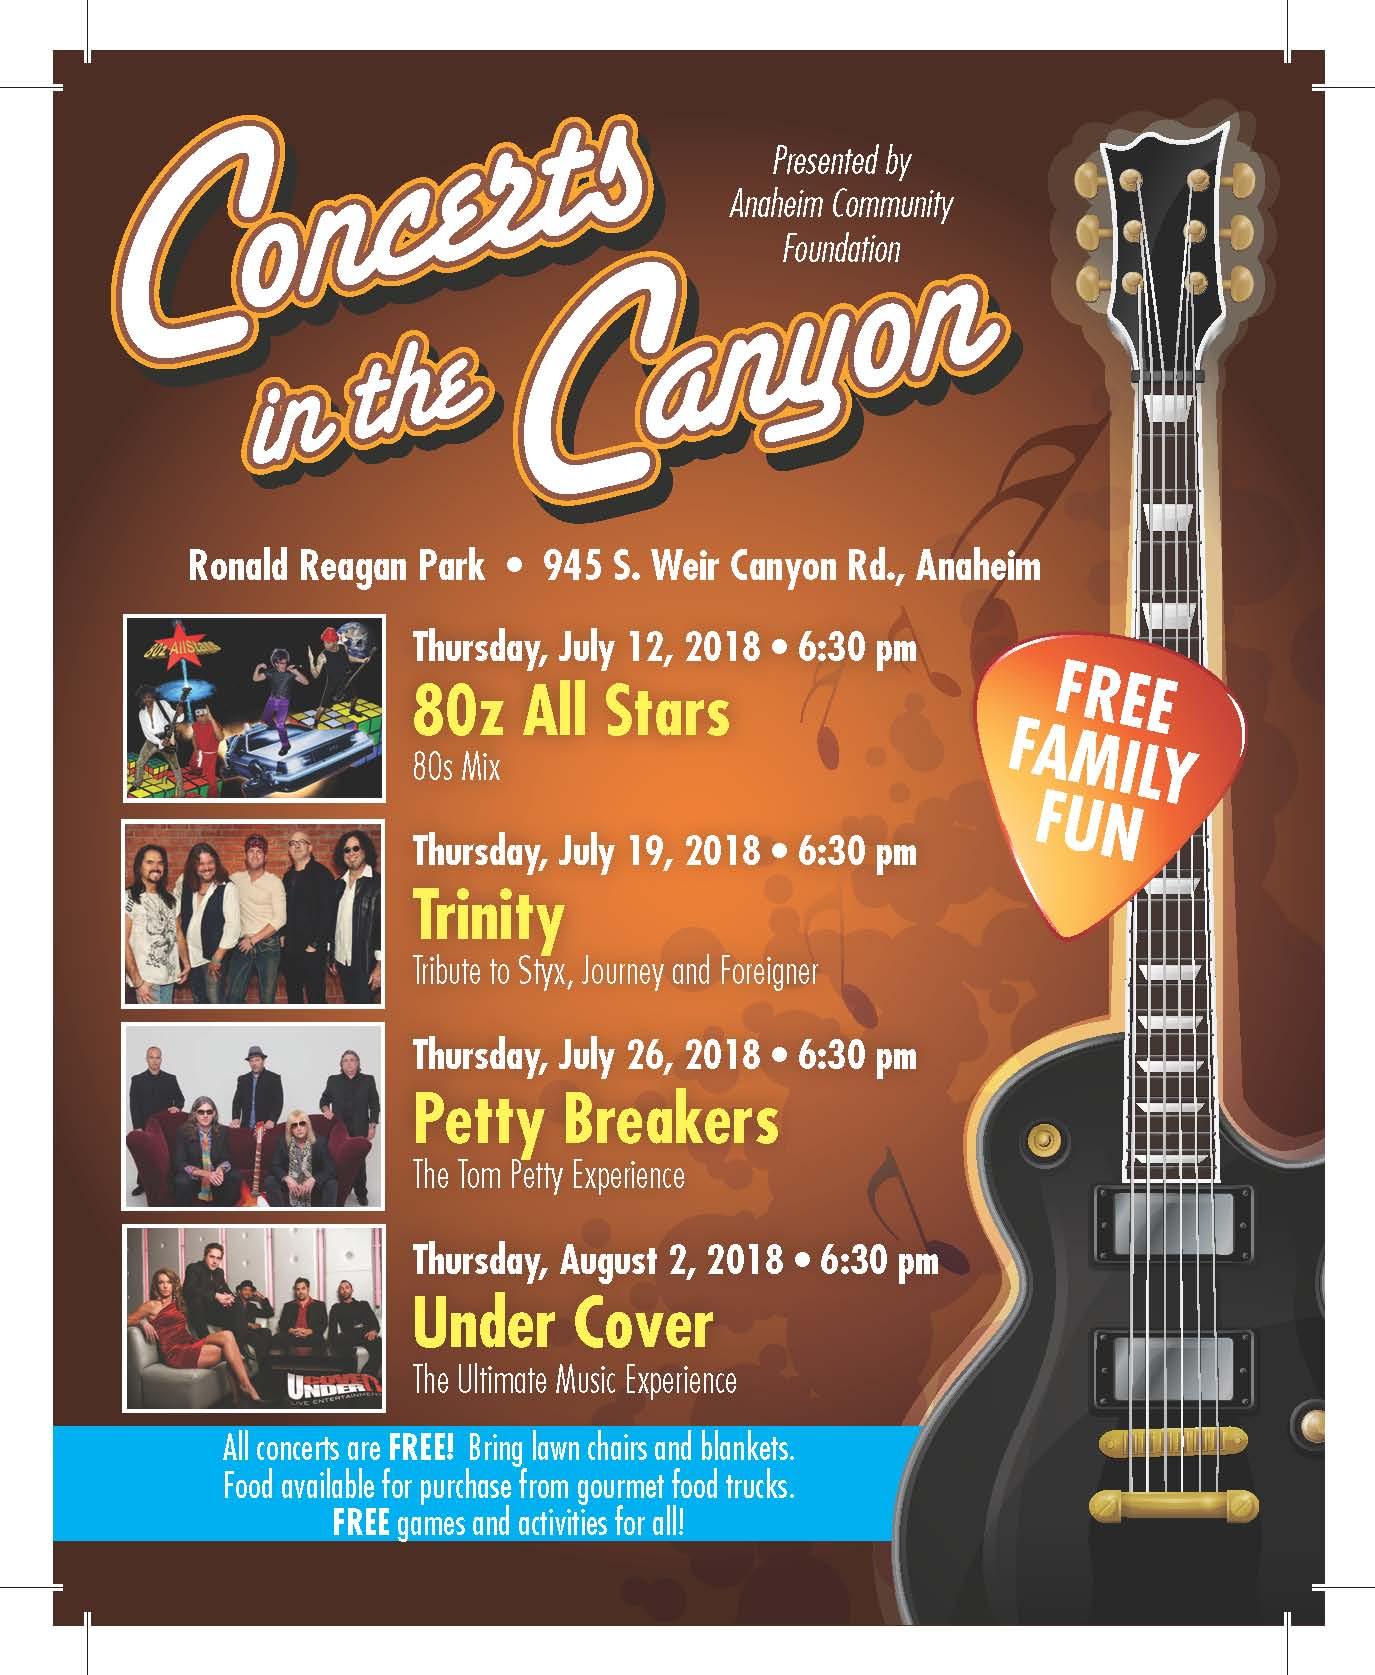 2018 Concerts In the Canyon